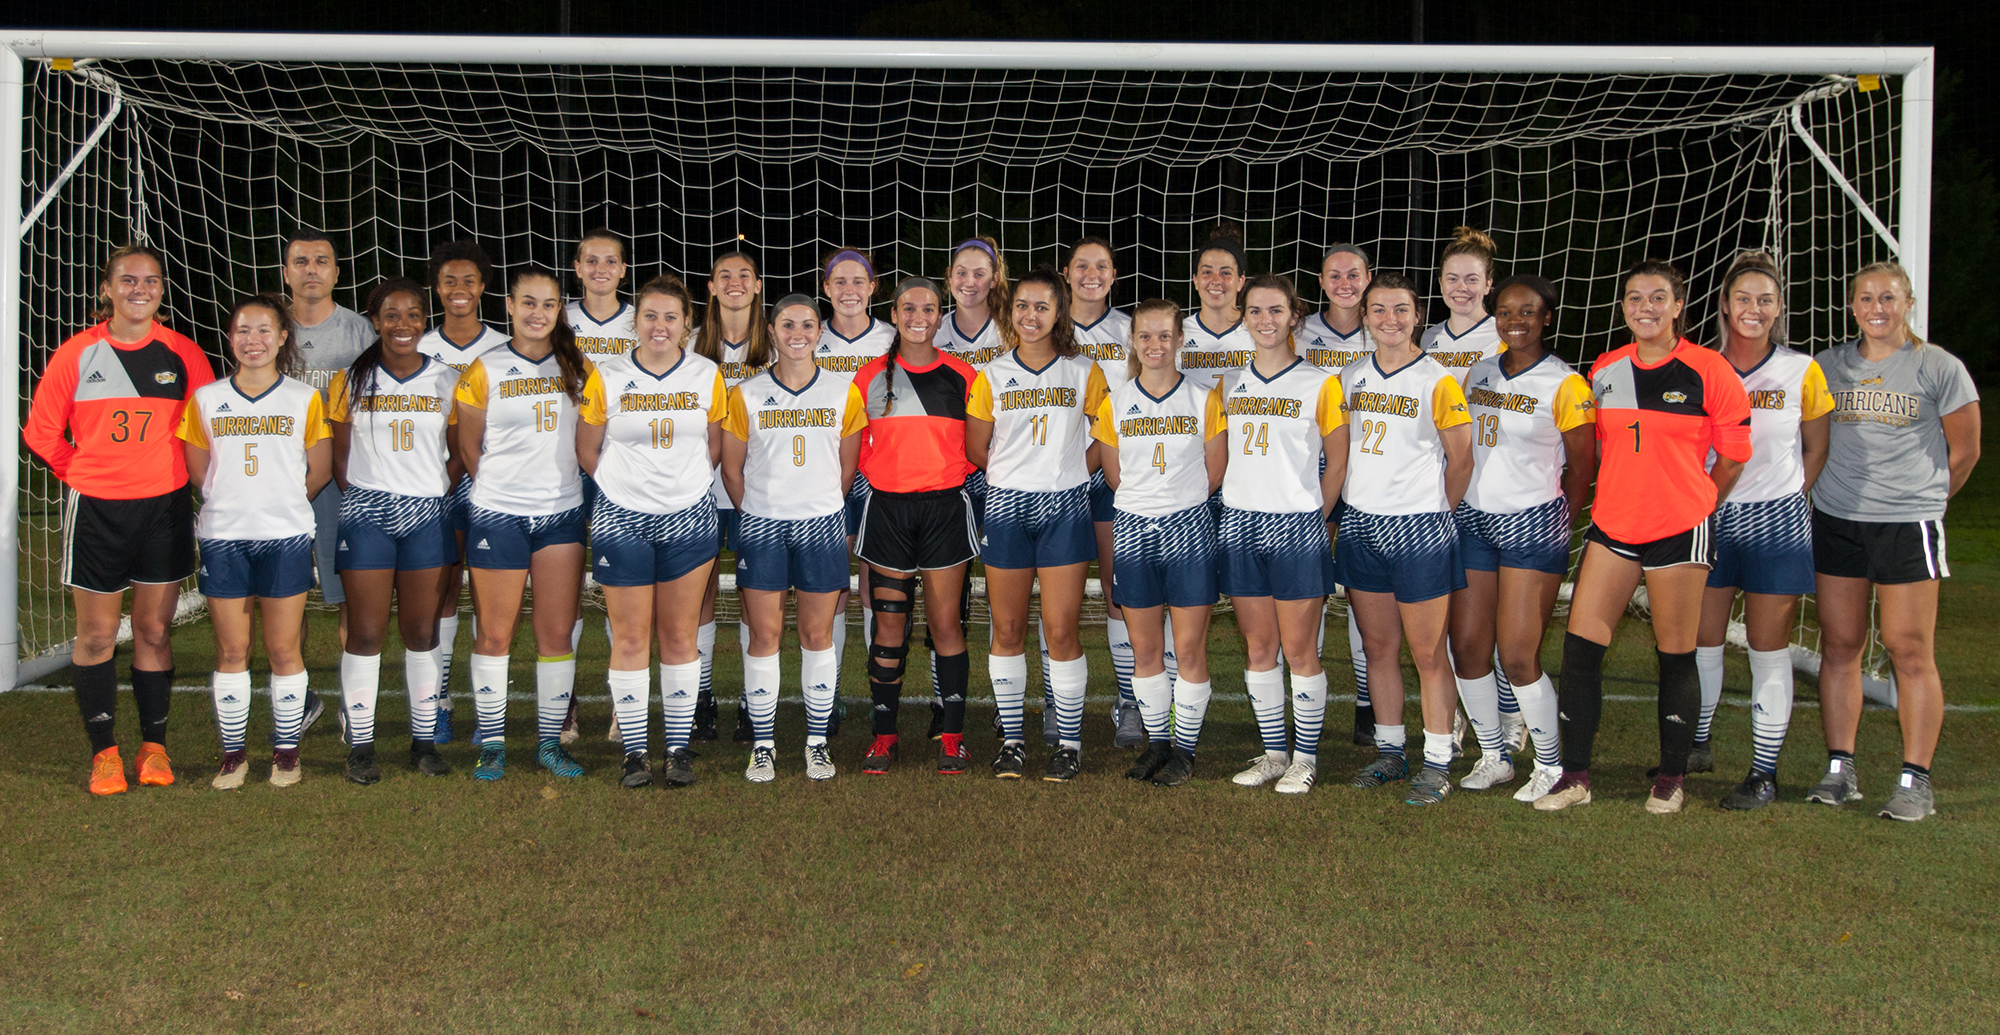 Rodriguez Makes History With Women's Soccer Program